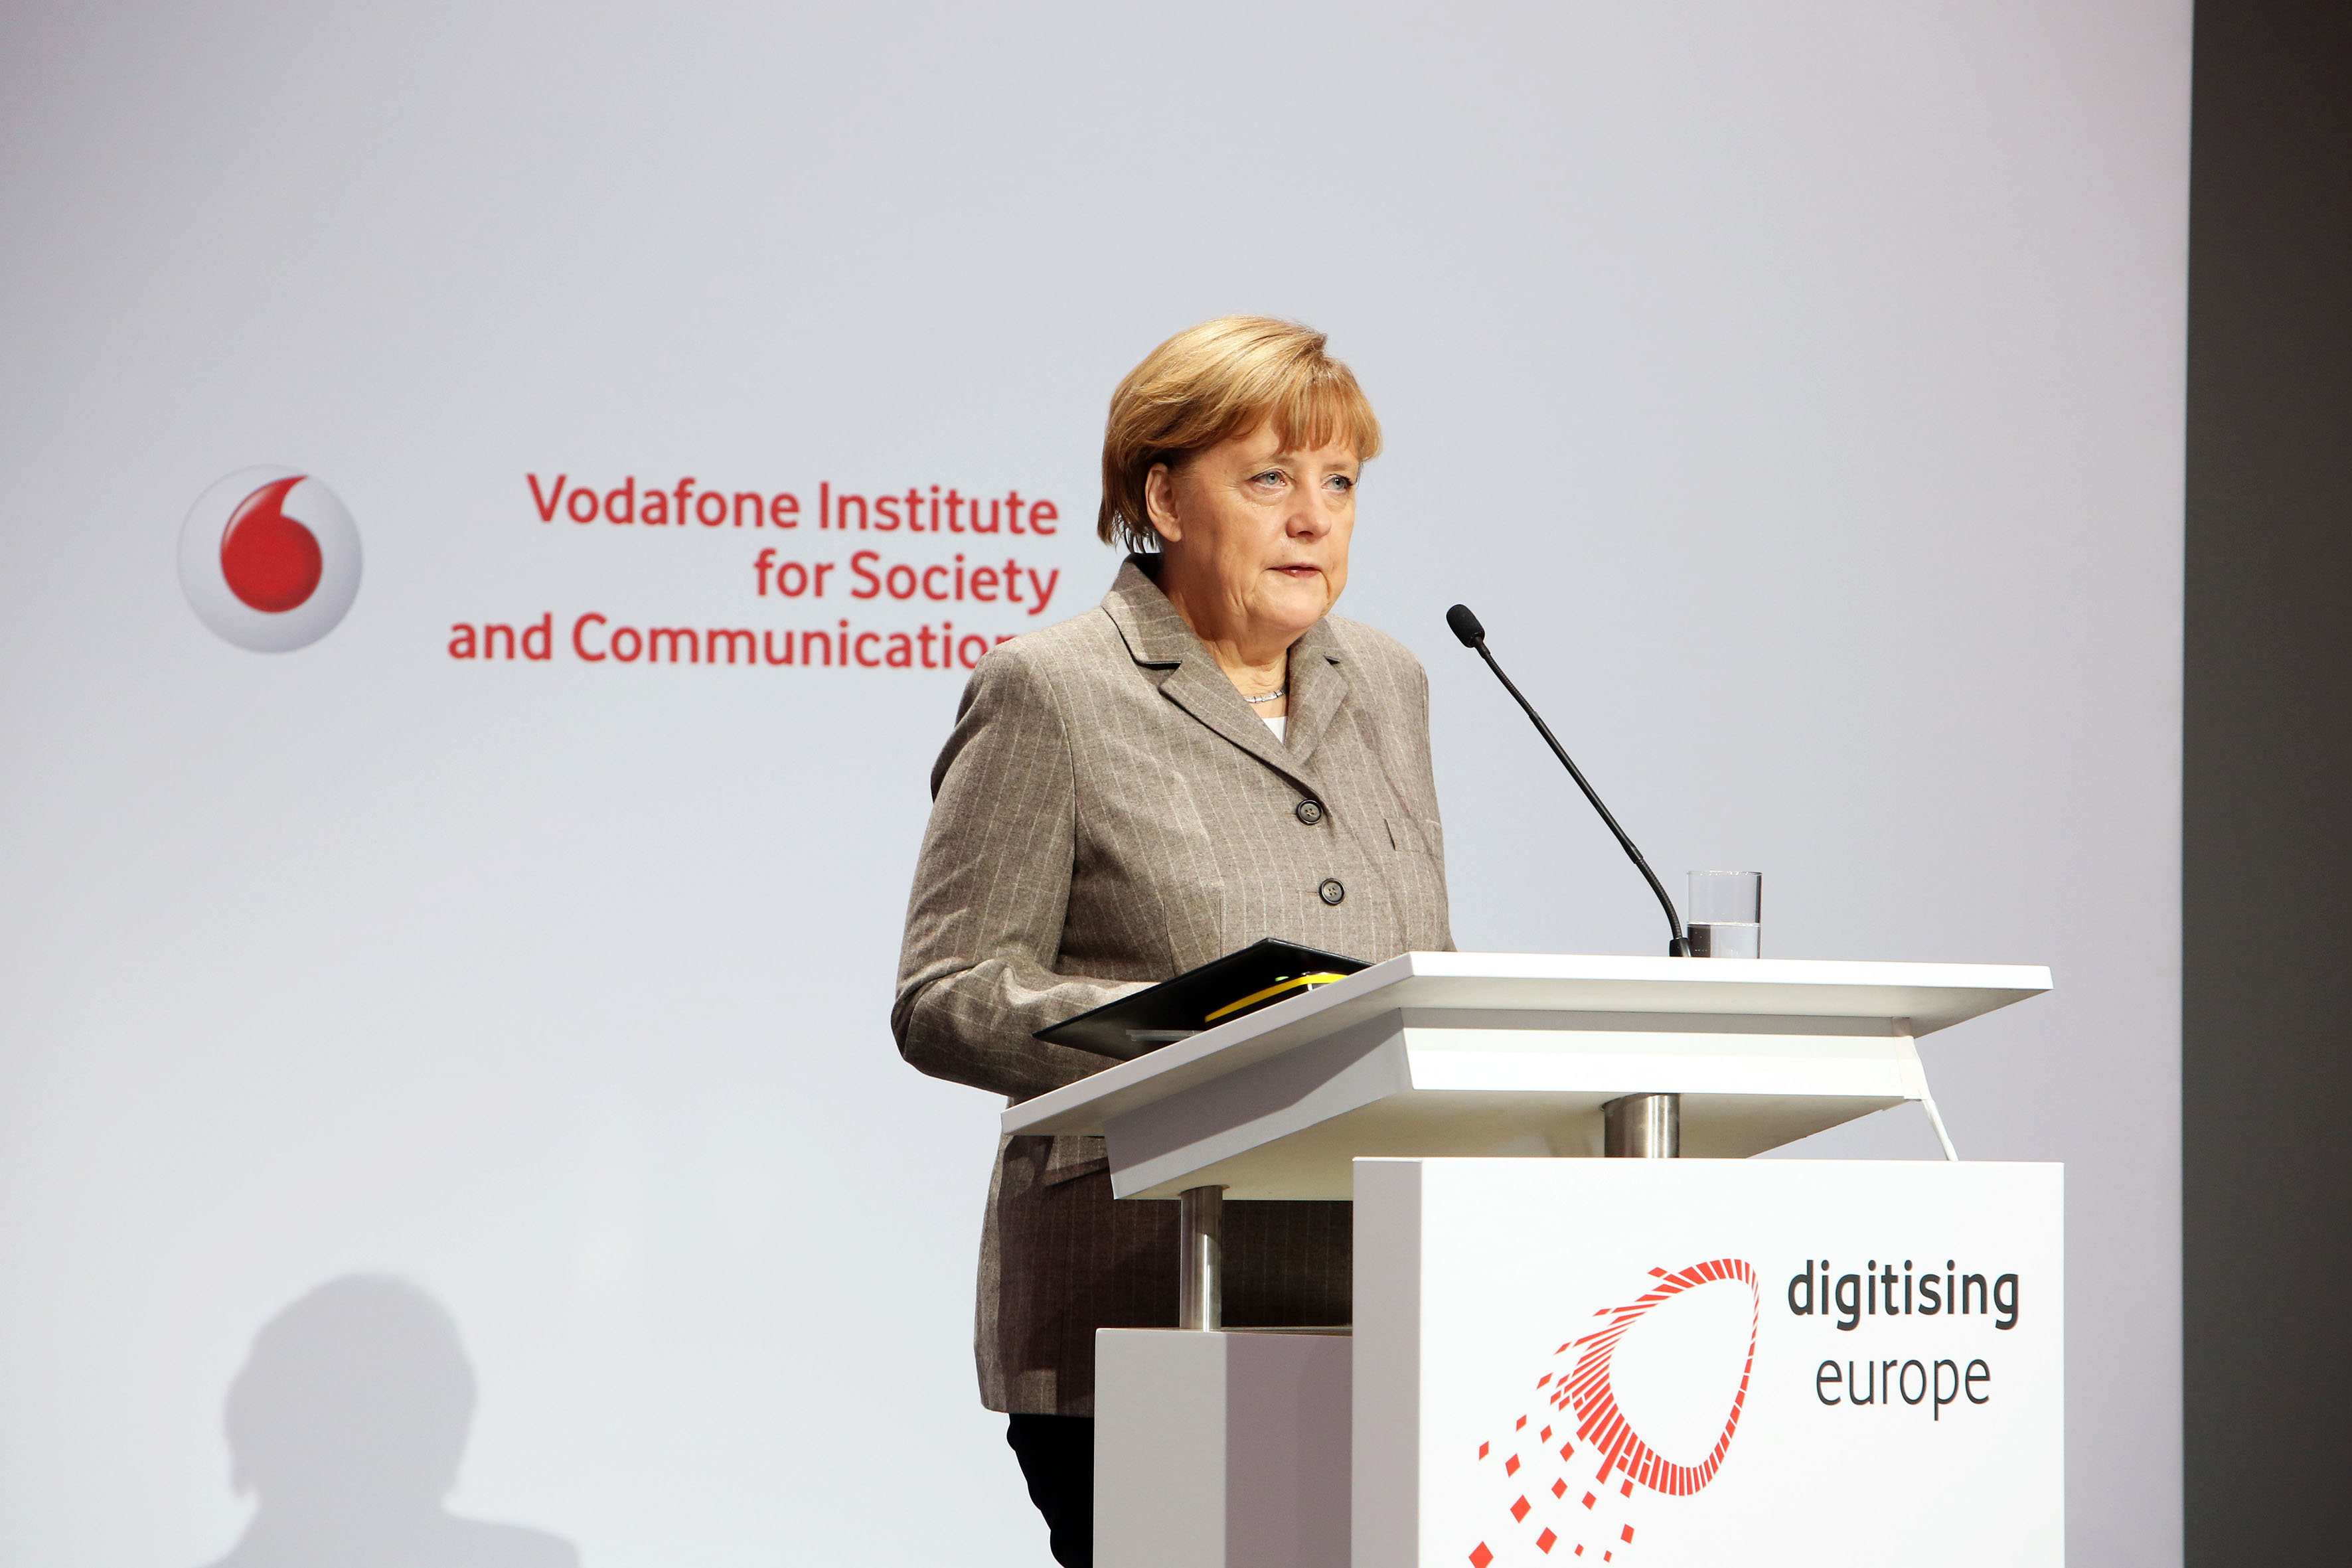 Digitising Europe - Angela Merkel